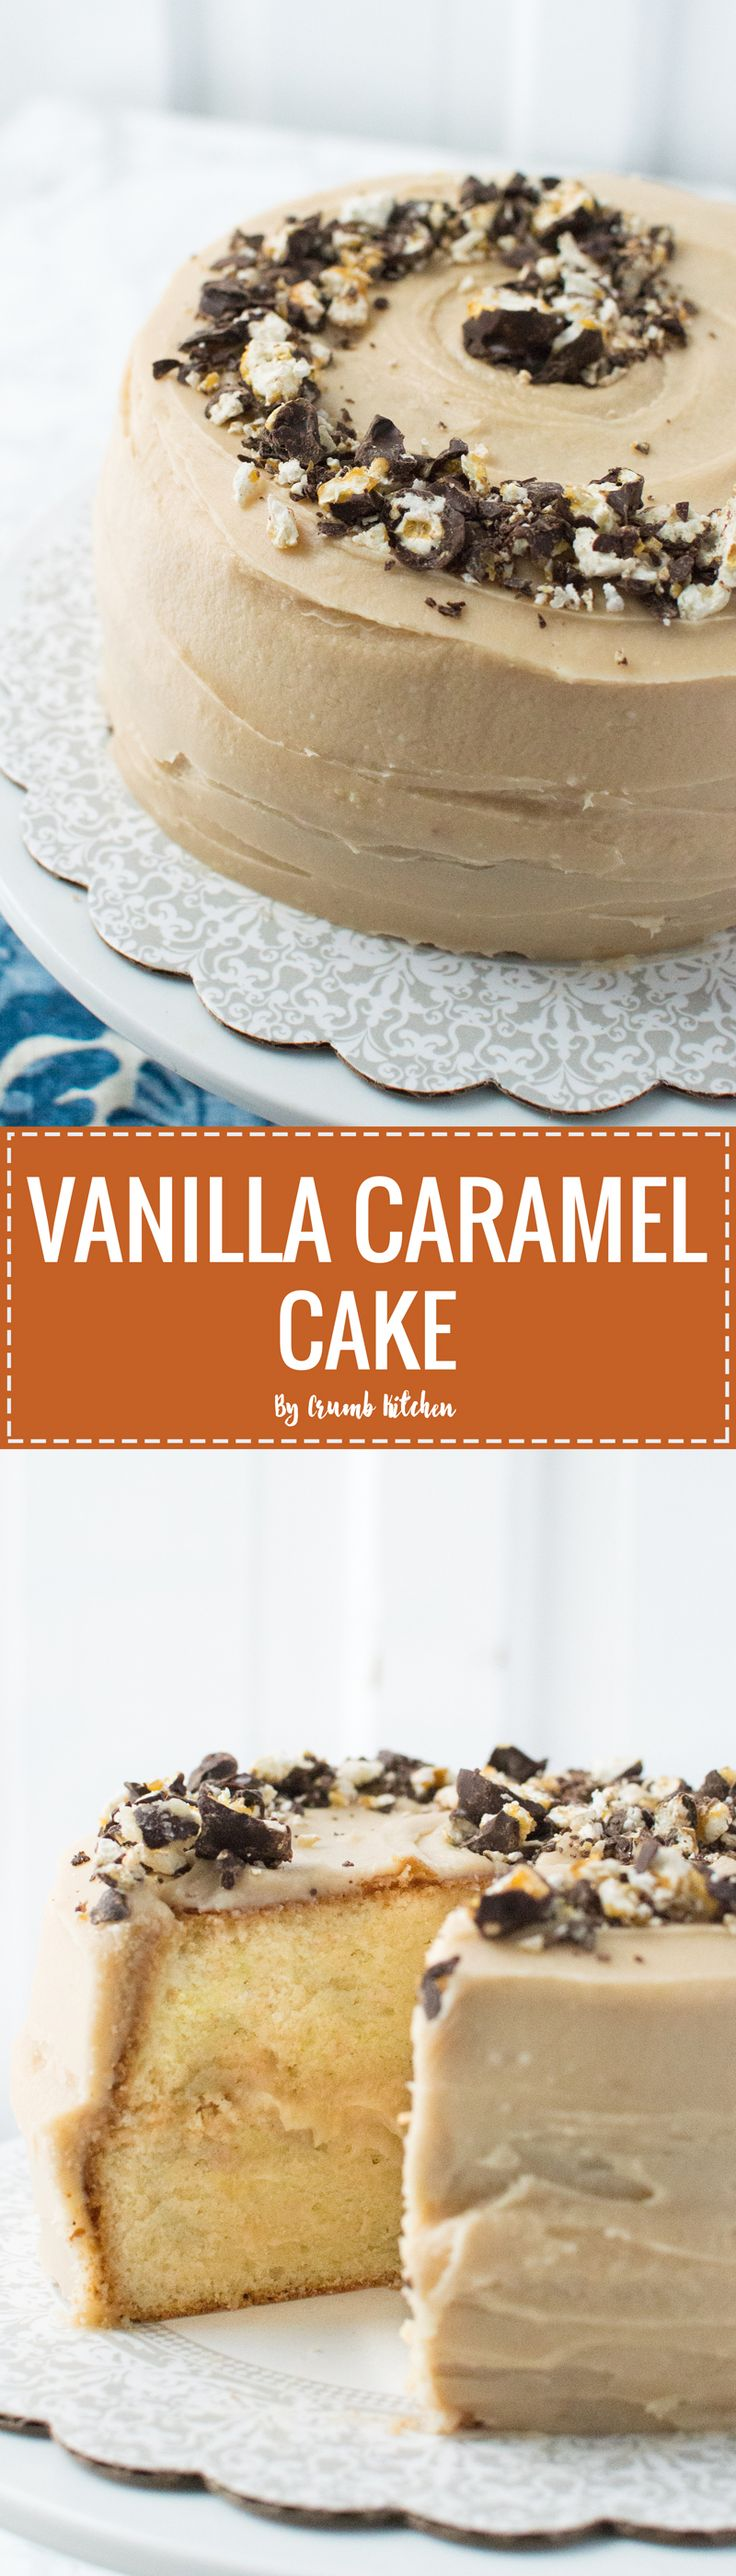 This Vanilla Caramel Cake is a classic vanilla cake topped with easy caramel buttercream frosting and crumbled chocolate caramel popcorn. | Crumb Kitchen